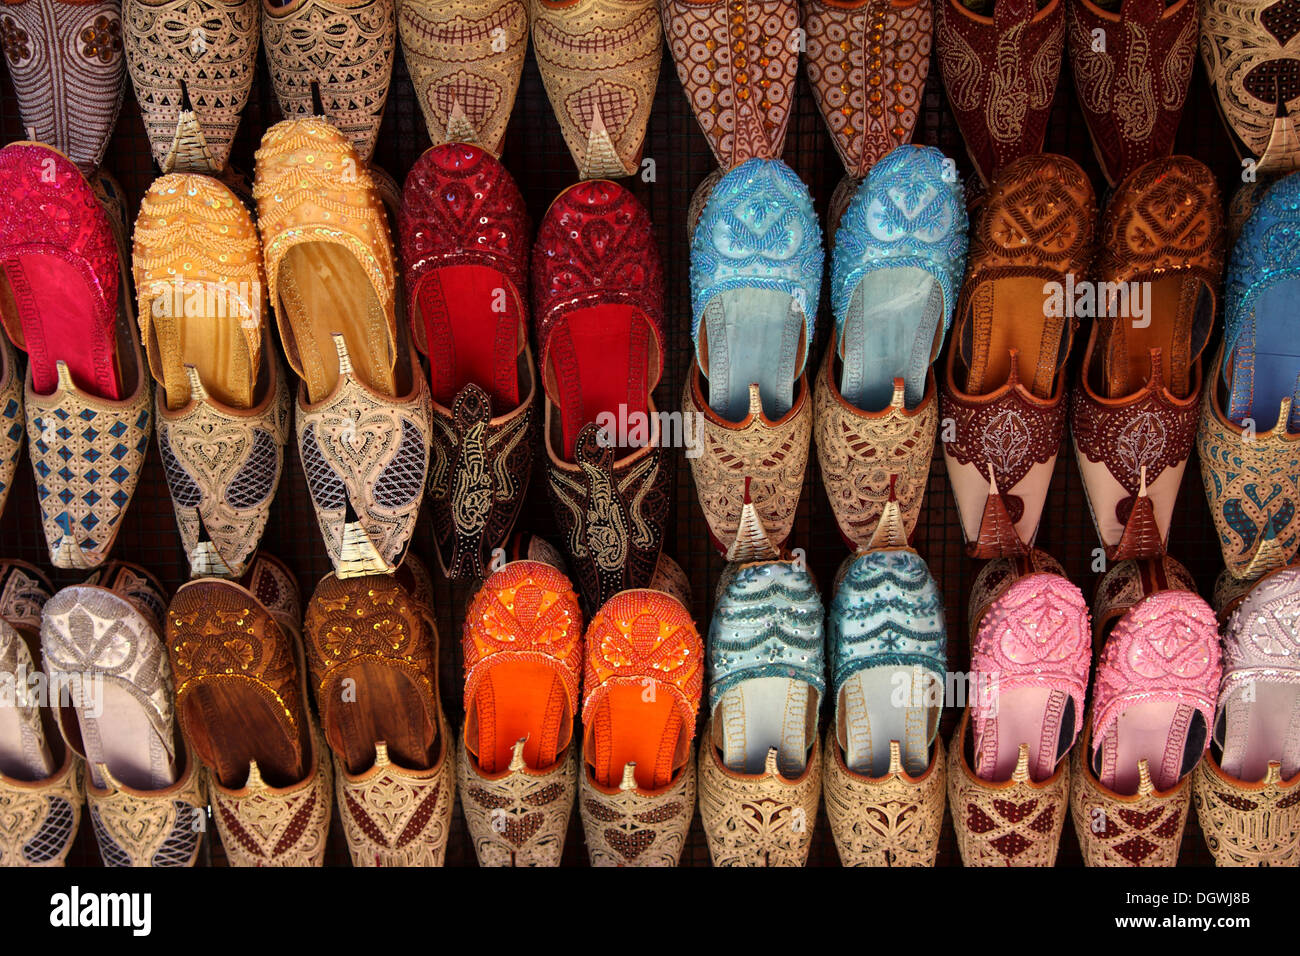 860bc2e13ddd Display of colorful Indian shoes on sale in the Bur Dubai Souk Stock ...